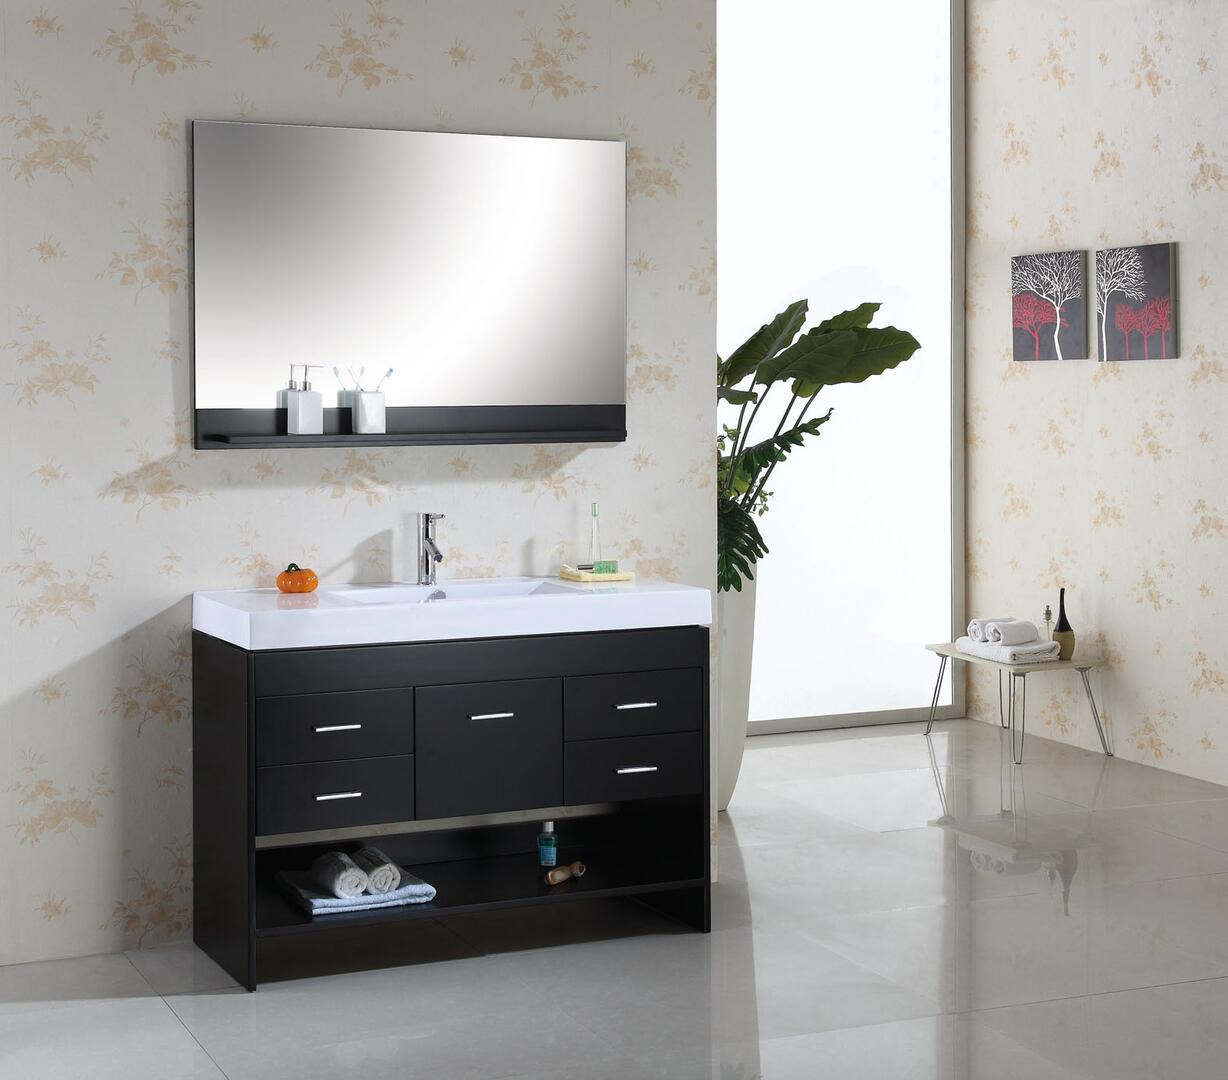 Virtu usa ms575ces appliances connection for Bathroom vanity packages